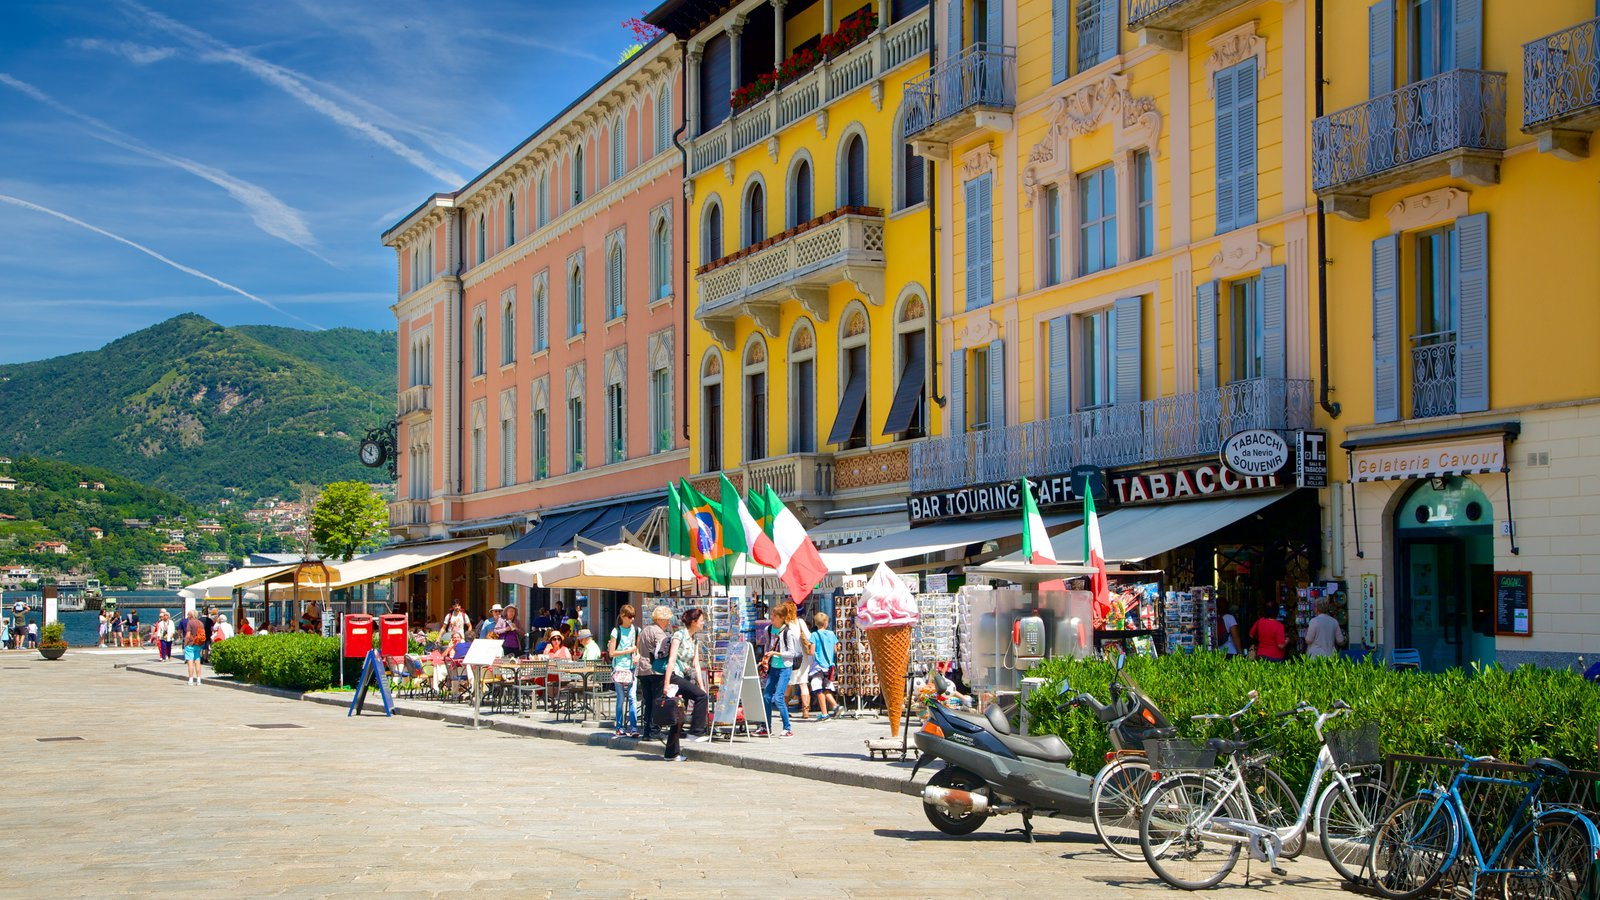 Piazza Cavour which includes outdoor eating and heritage architecture